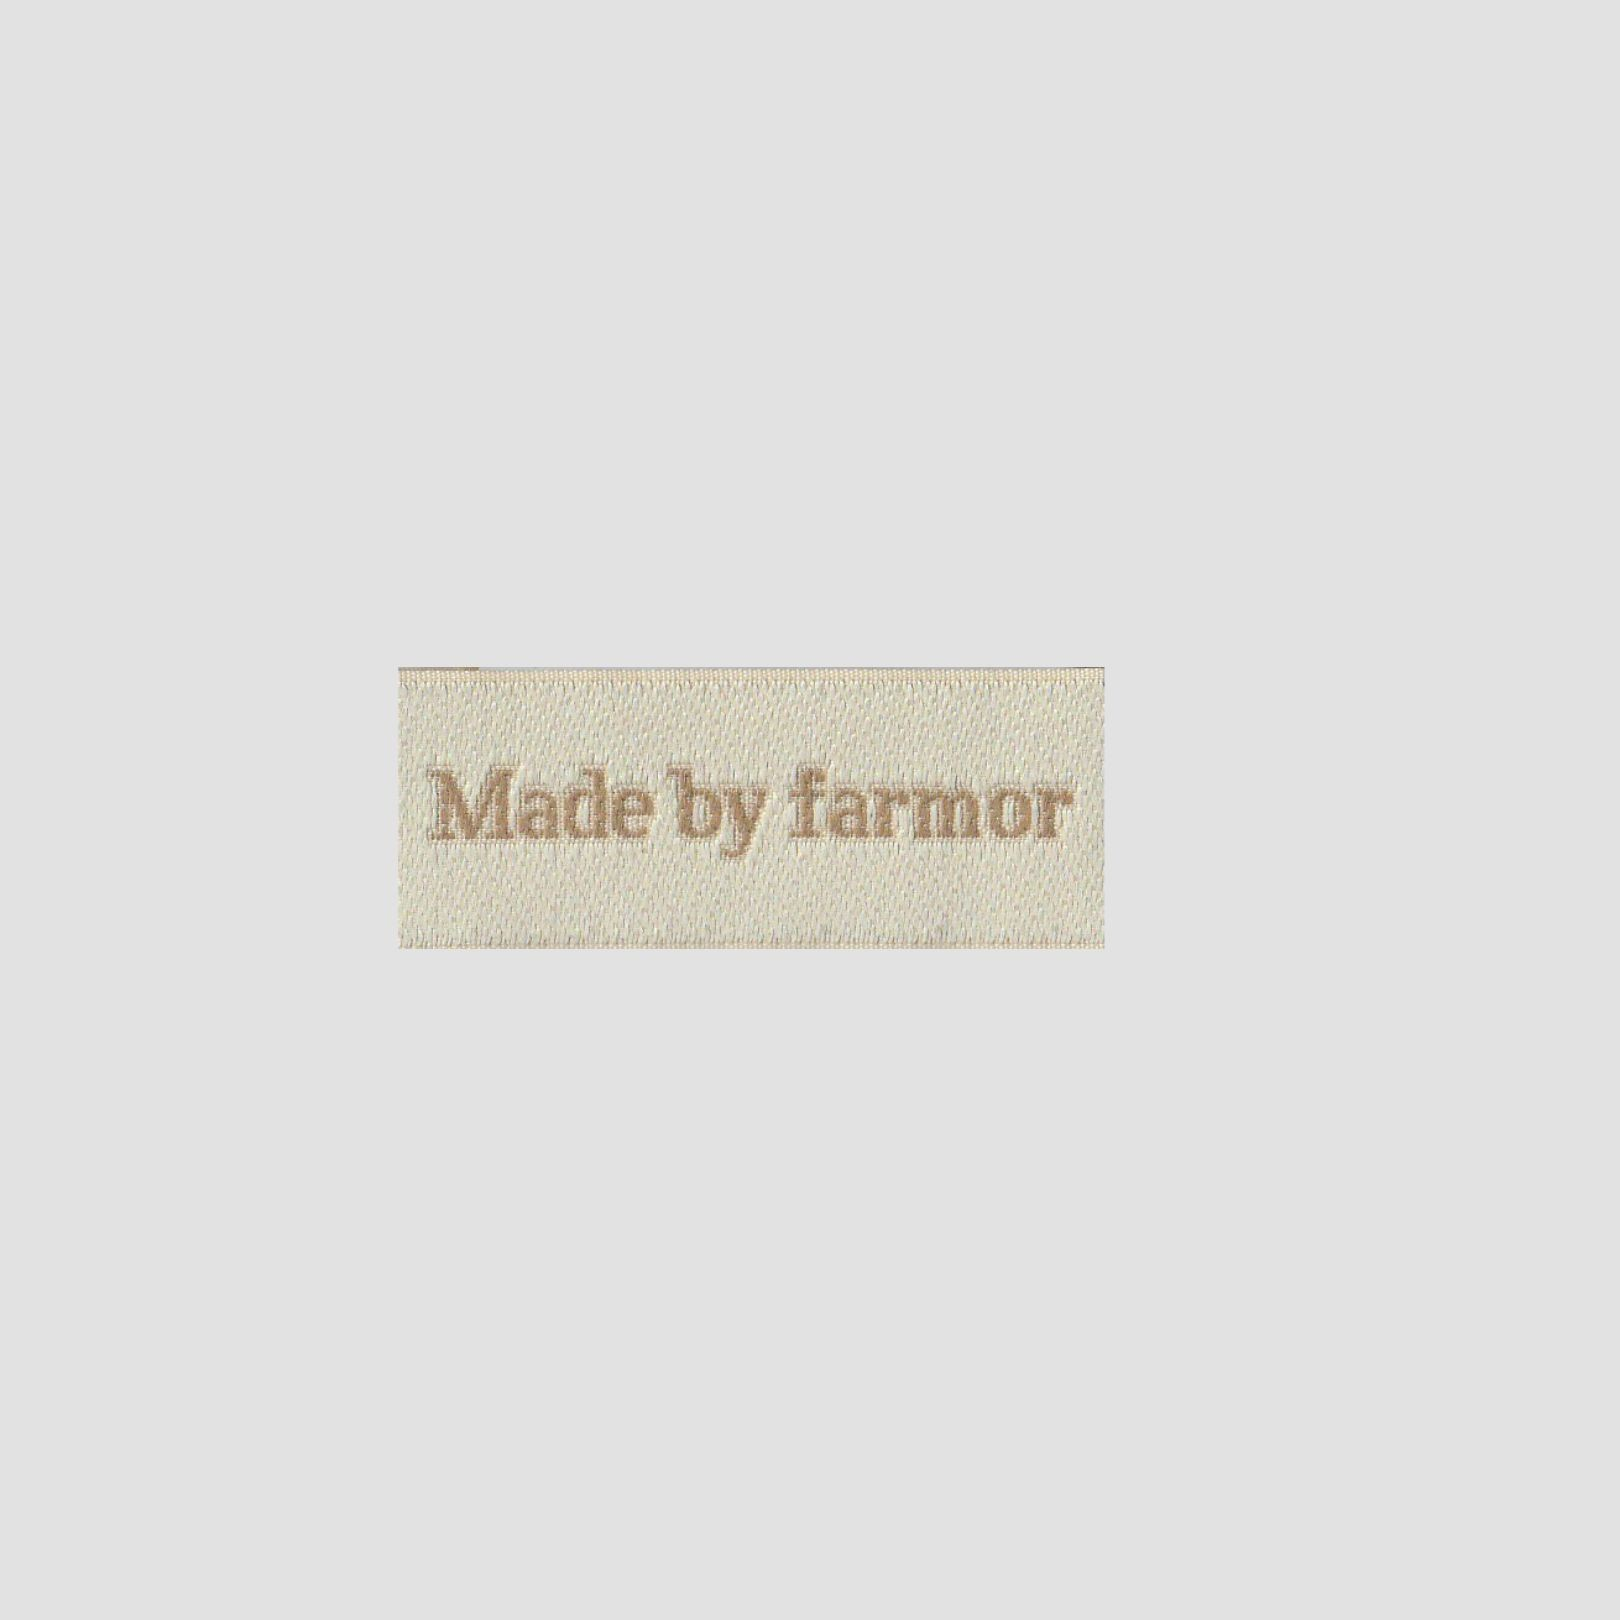 Image of Made by farmor